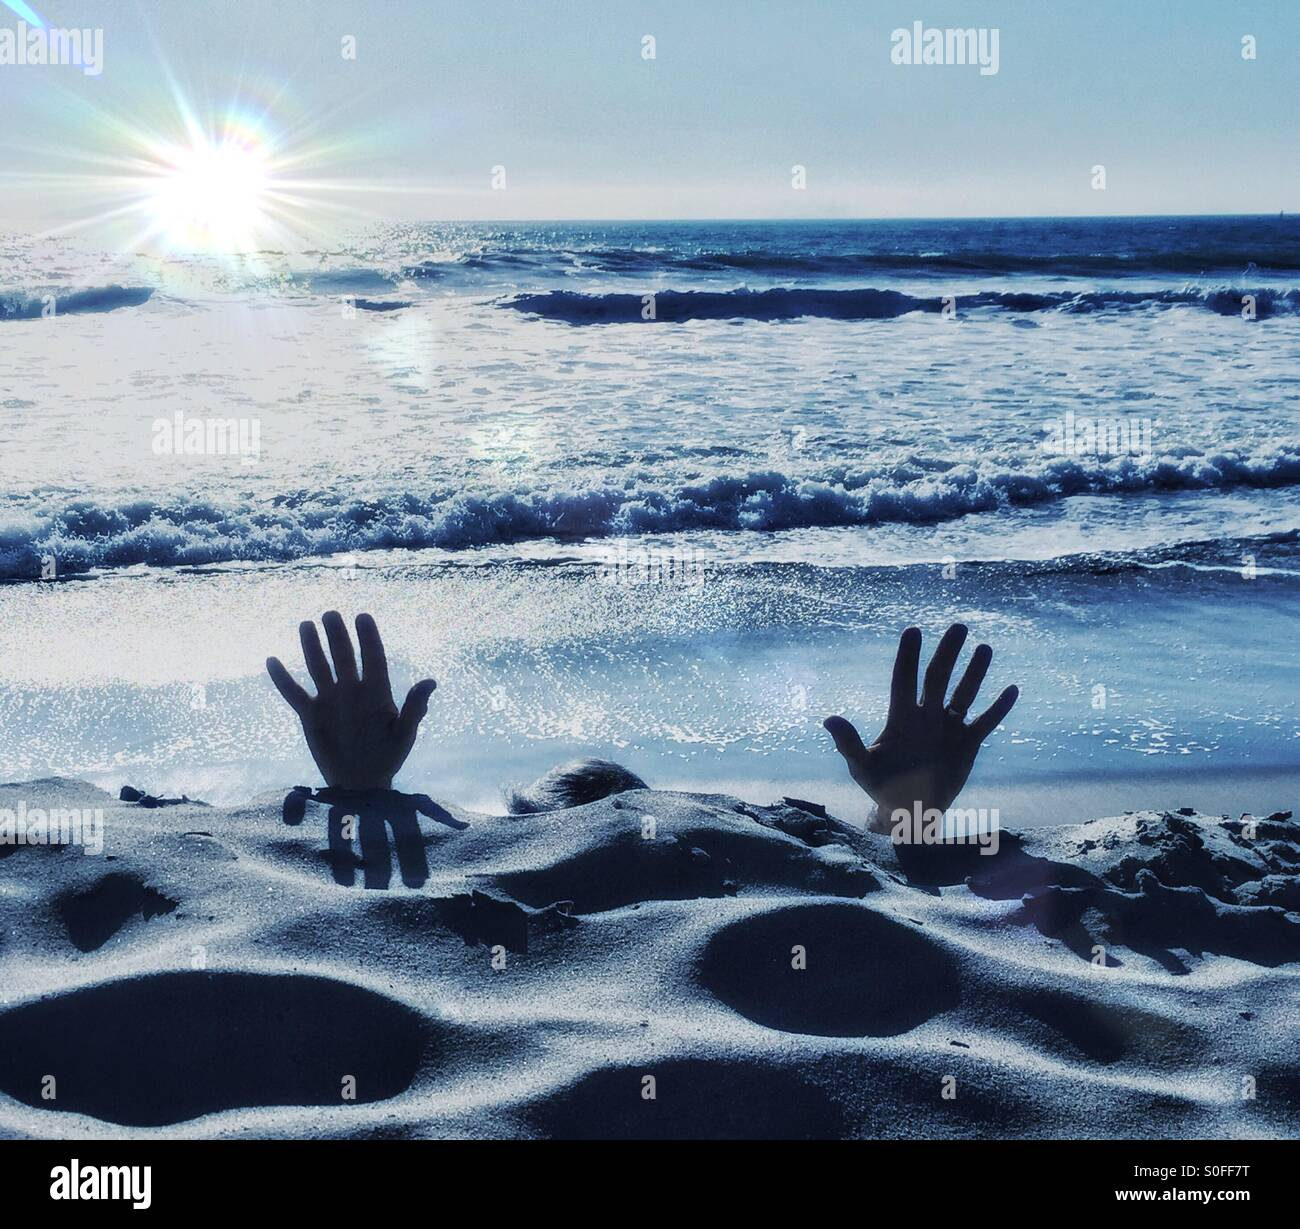 I Surrender, Man With Hands Up, Reaching For Help - Stock Image